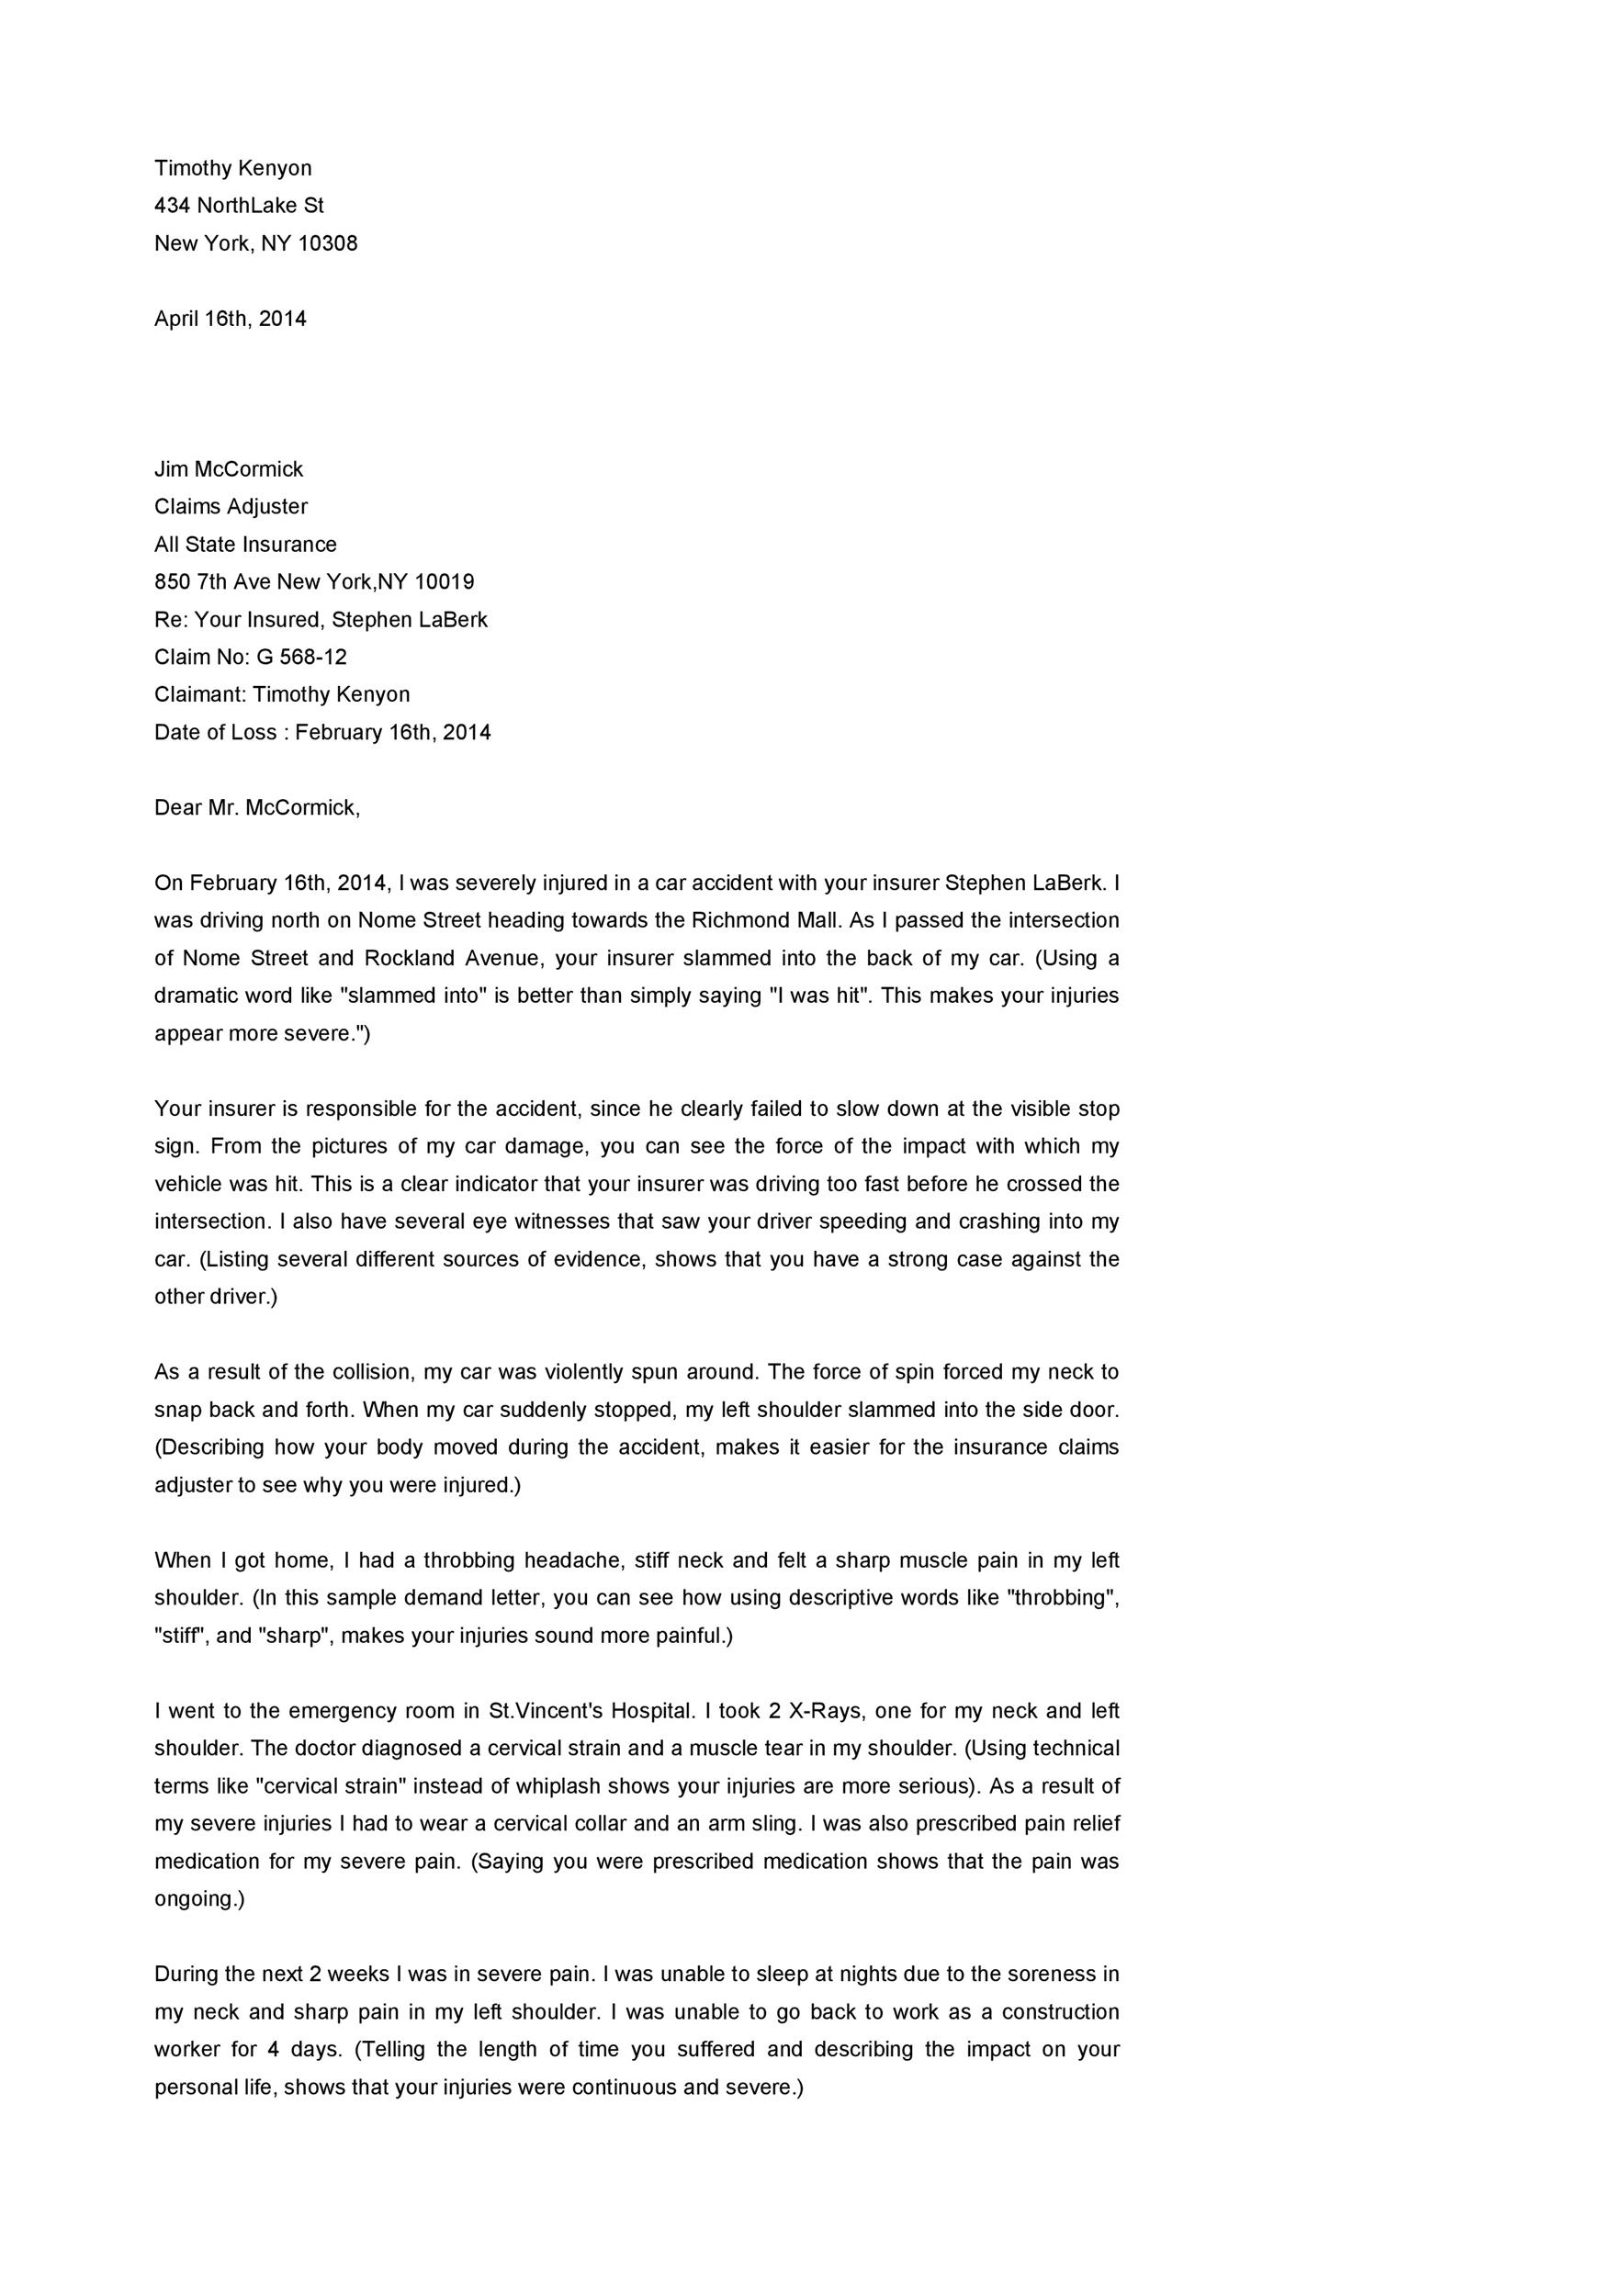 demand letter example  demand letters definition  examples